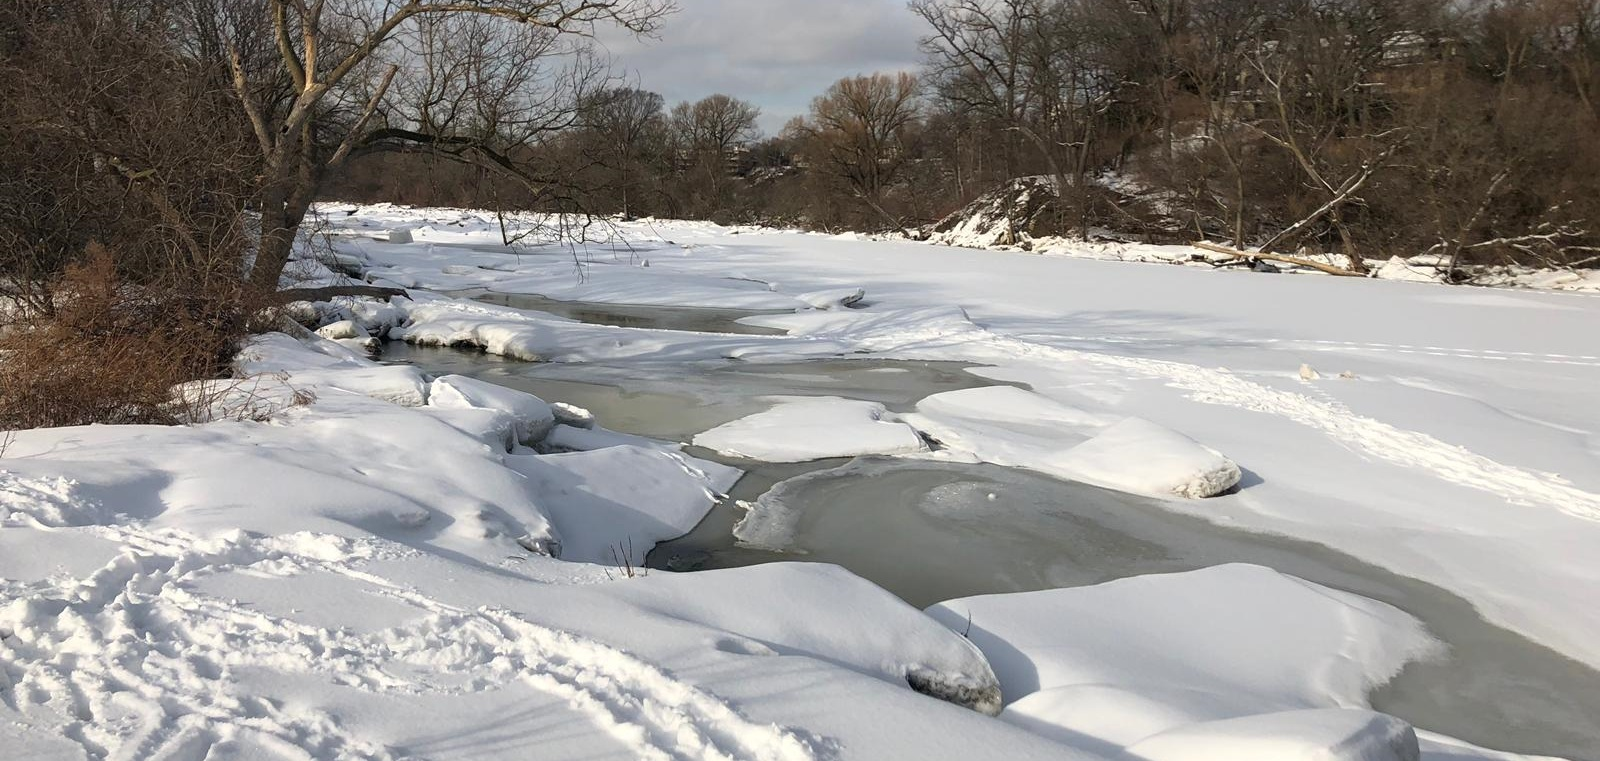 ice jam on Humber River near Old Mill poses spring safety hazard